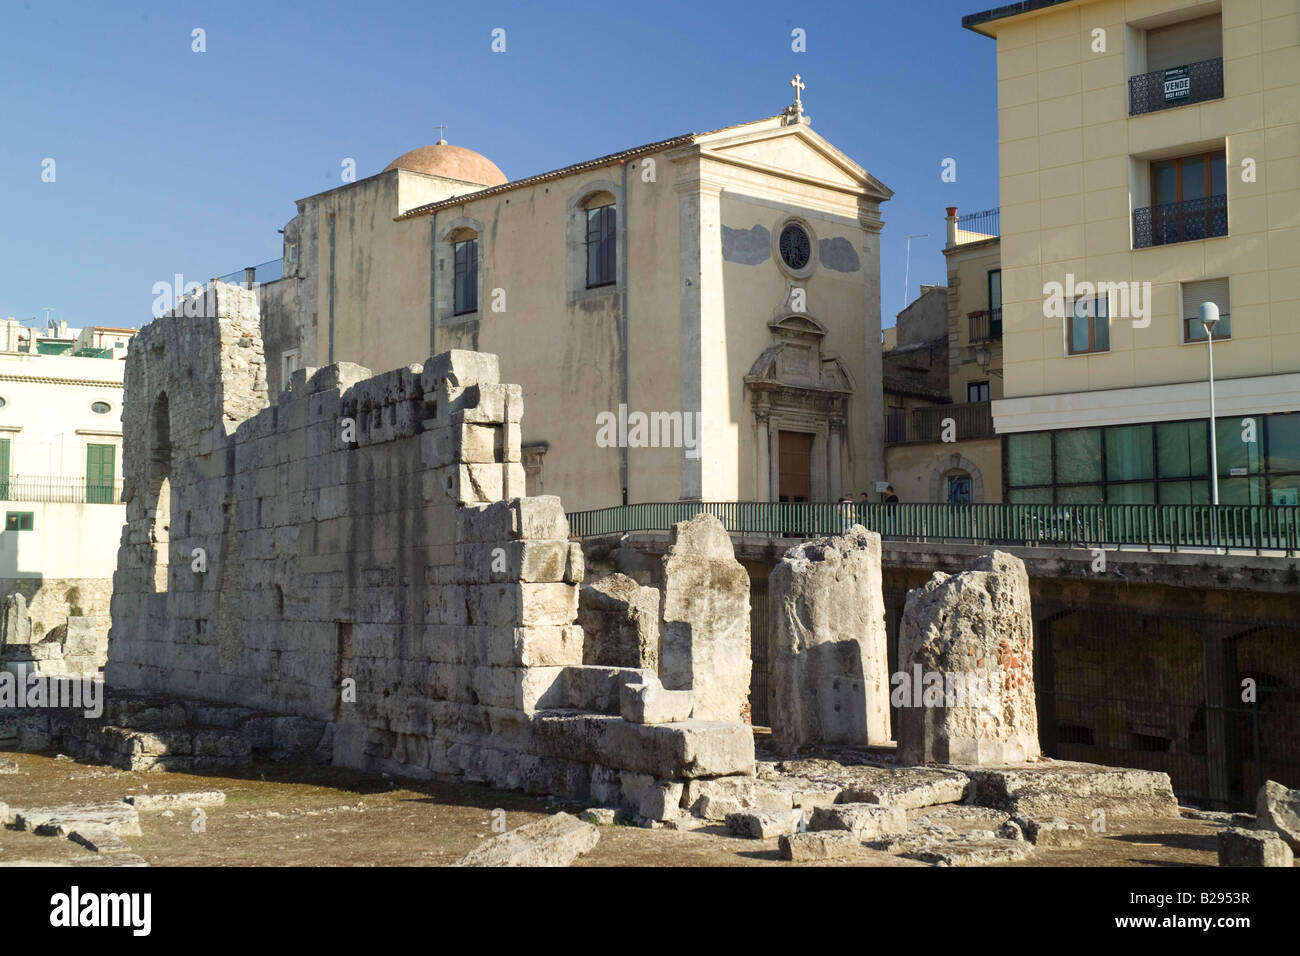 Temple of Apollo Syracusa Sicily Date 28 05 2008 Ref ZB693 114320 0076 COMPULSORY CREDIT World Pictures Photoshot - Stock Image